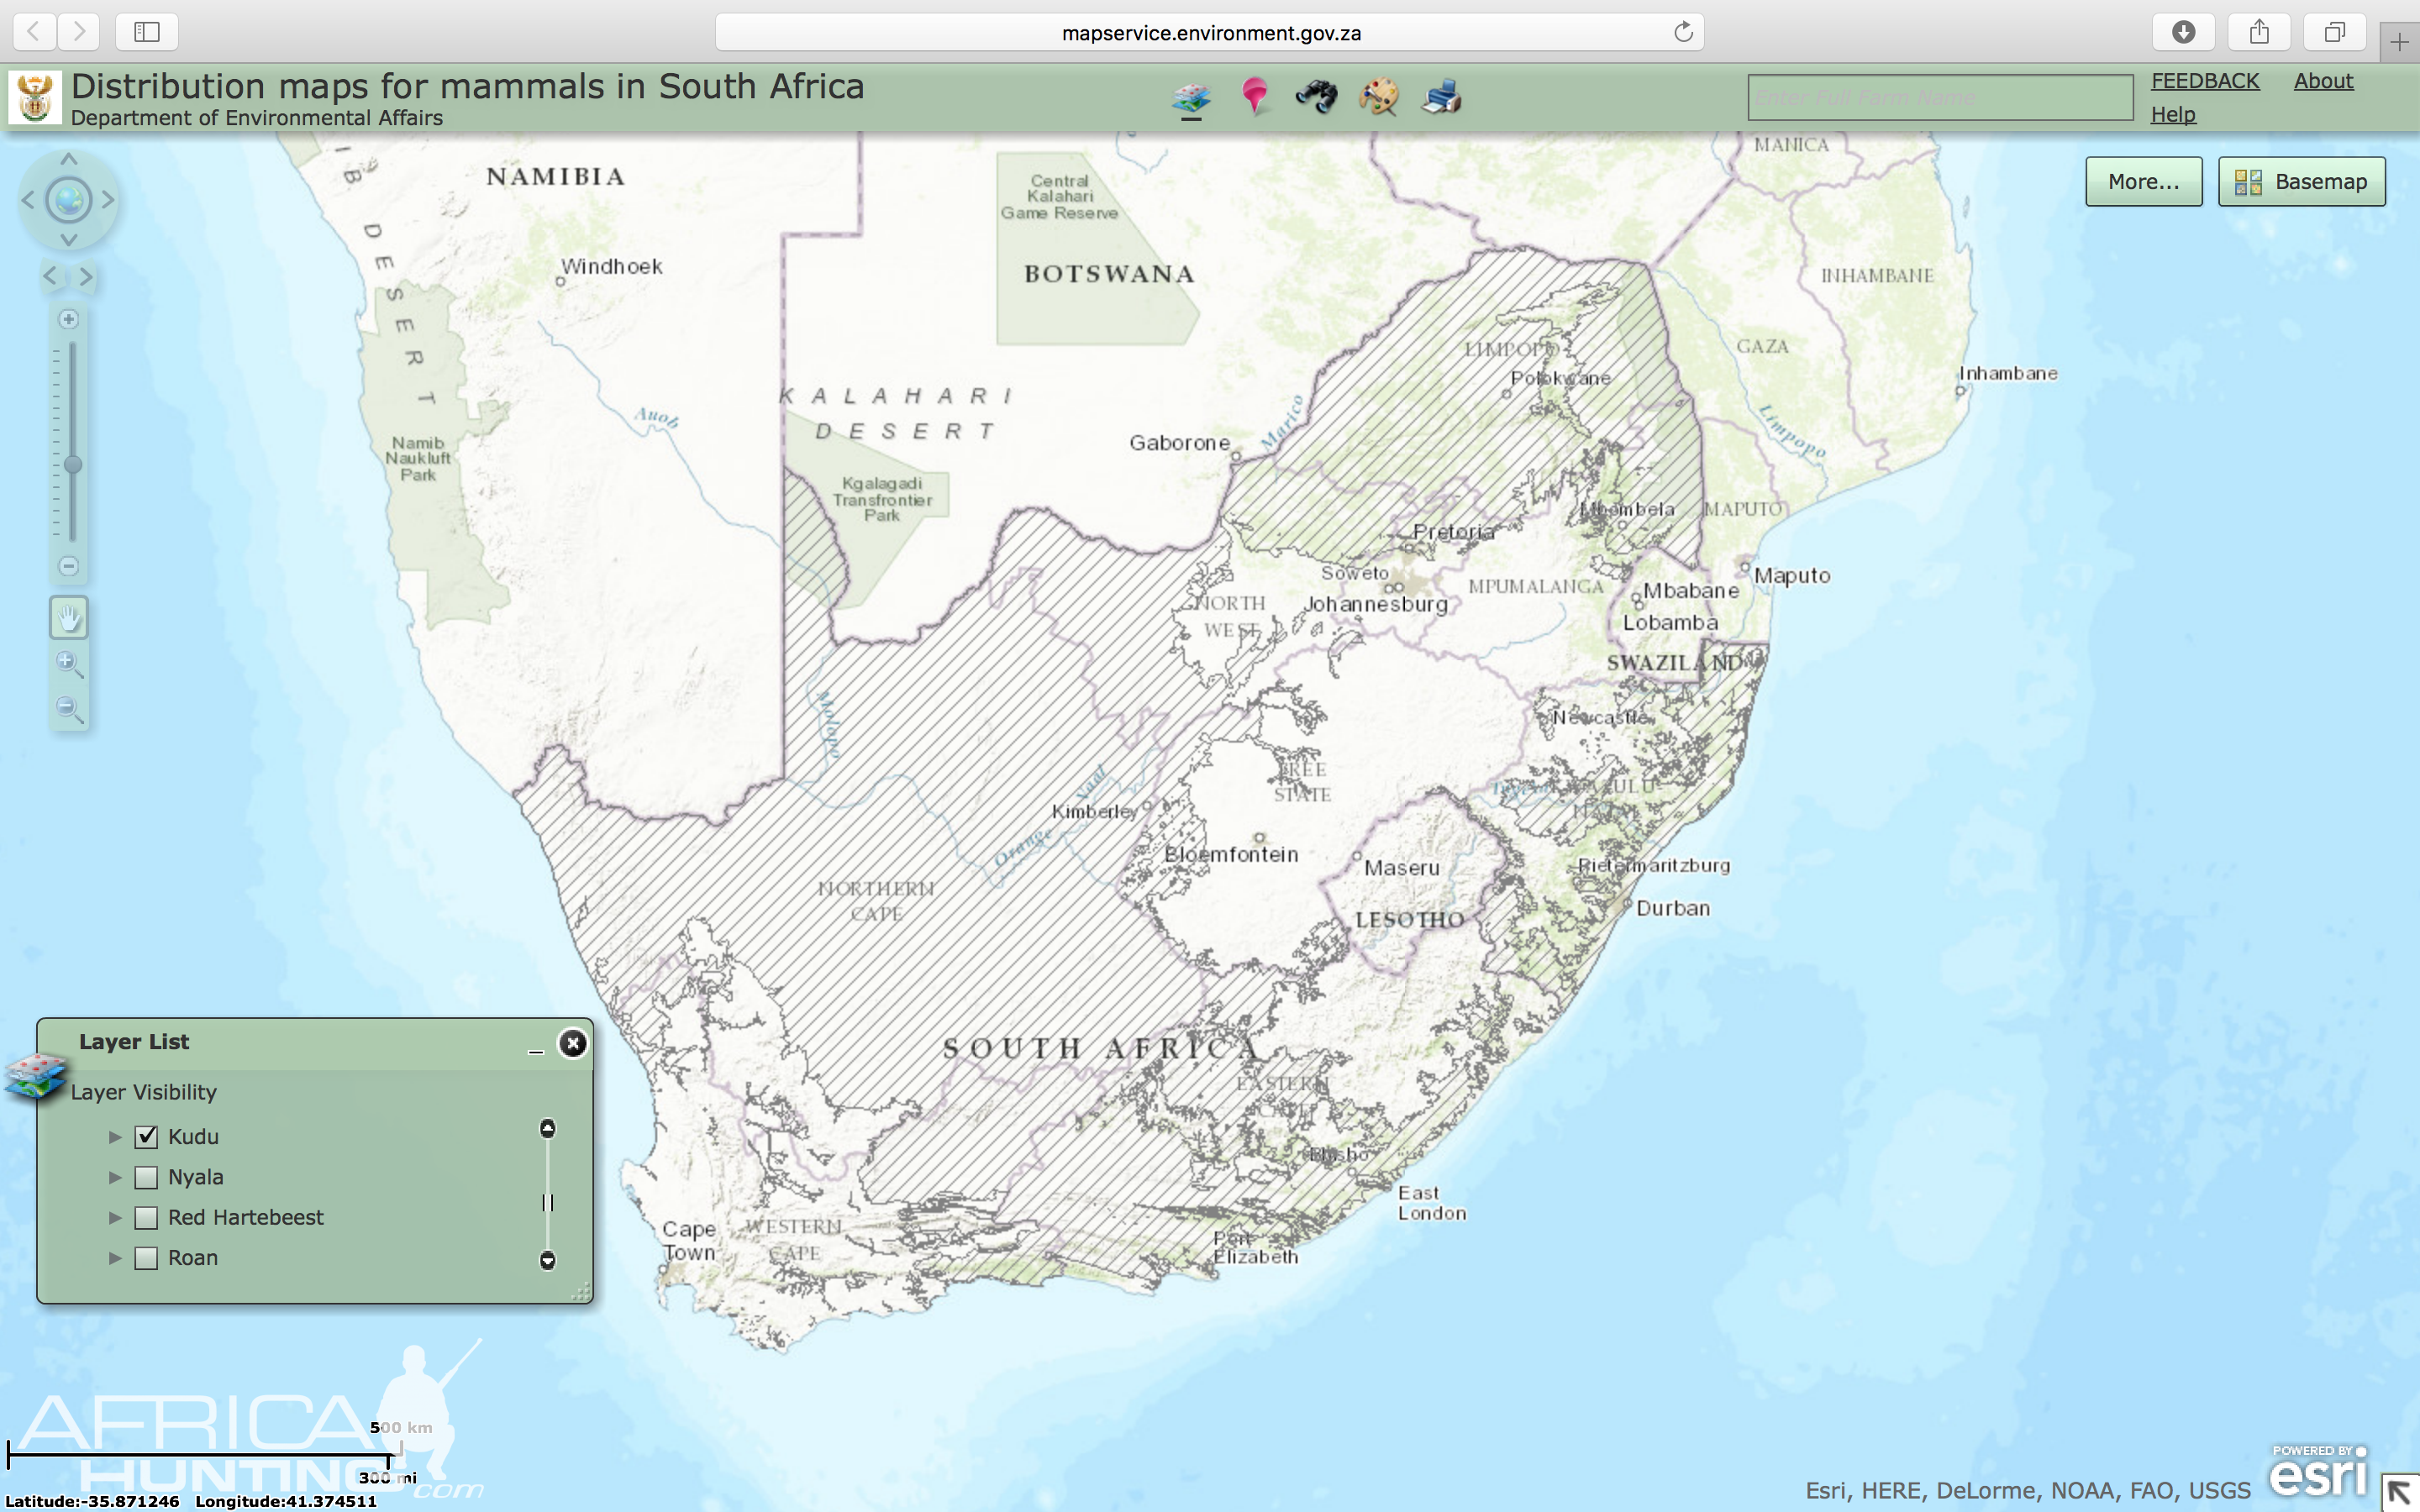 kudu-distribution-map-south-africa.png